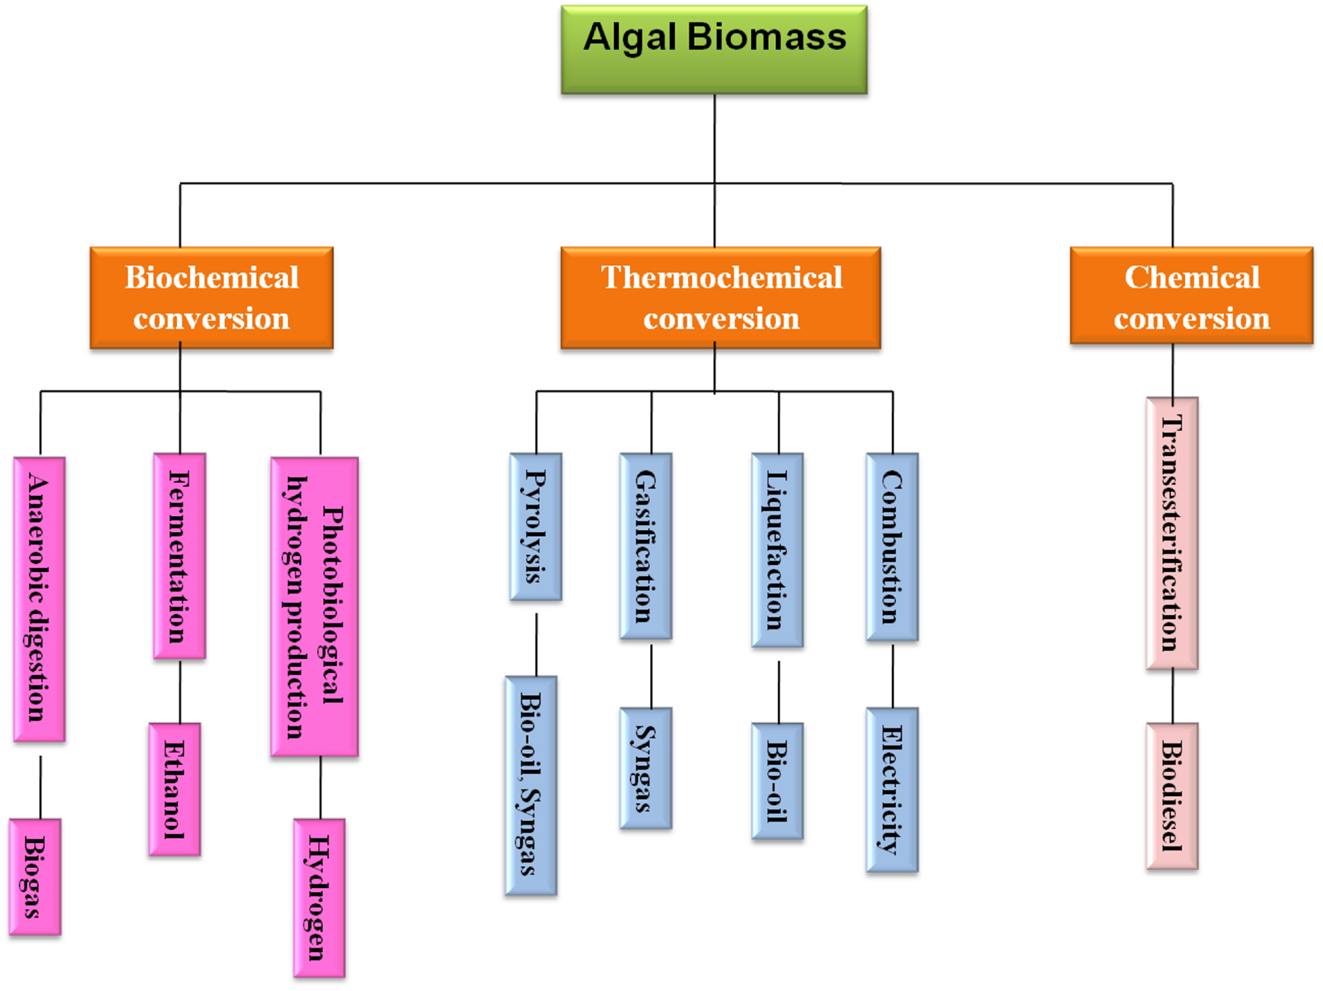 hight resolution of www frontiersin org figure 1 algal biomass conversion process for biofuel production